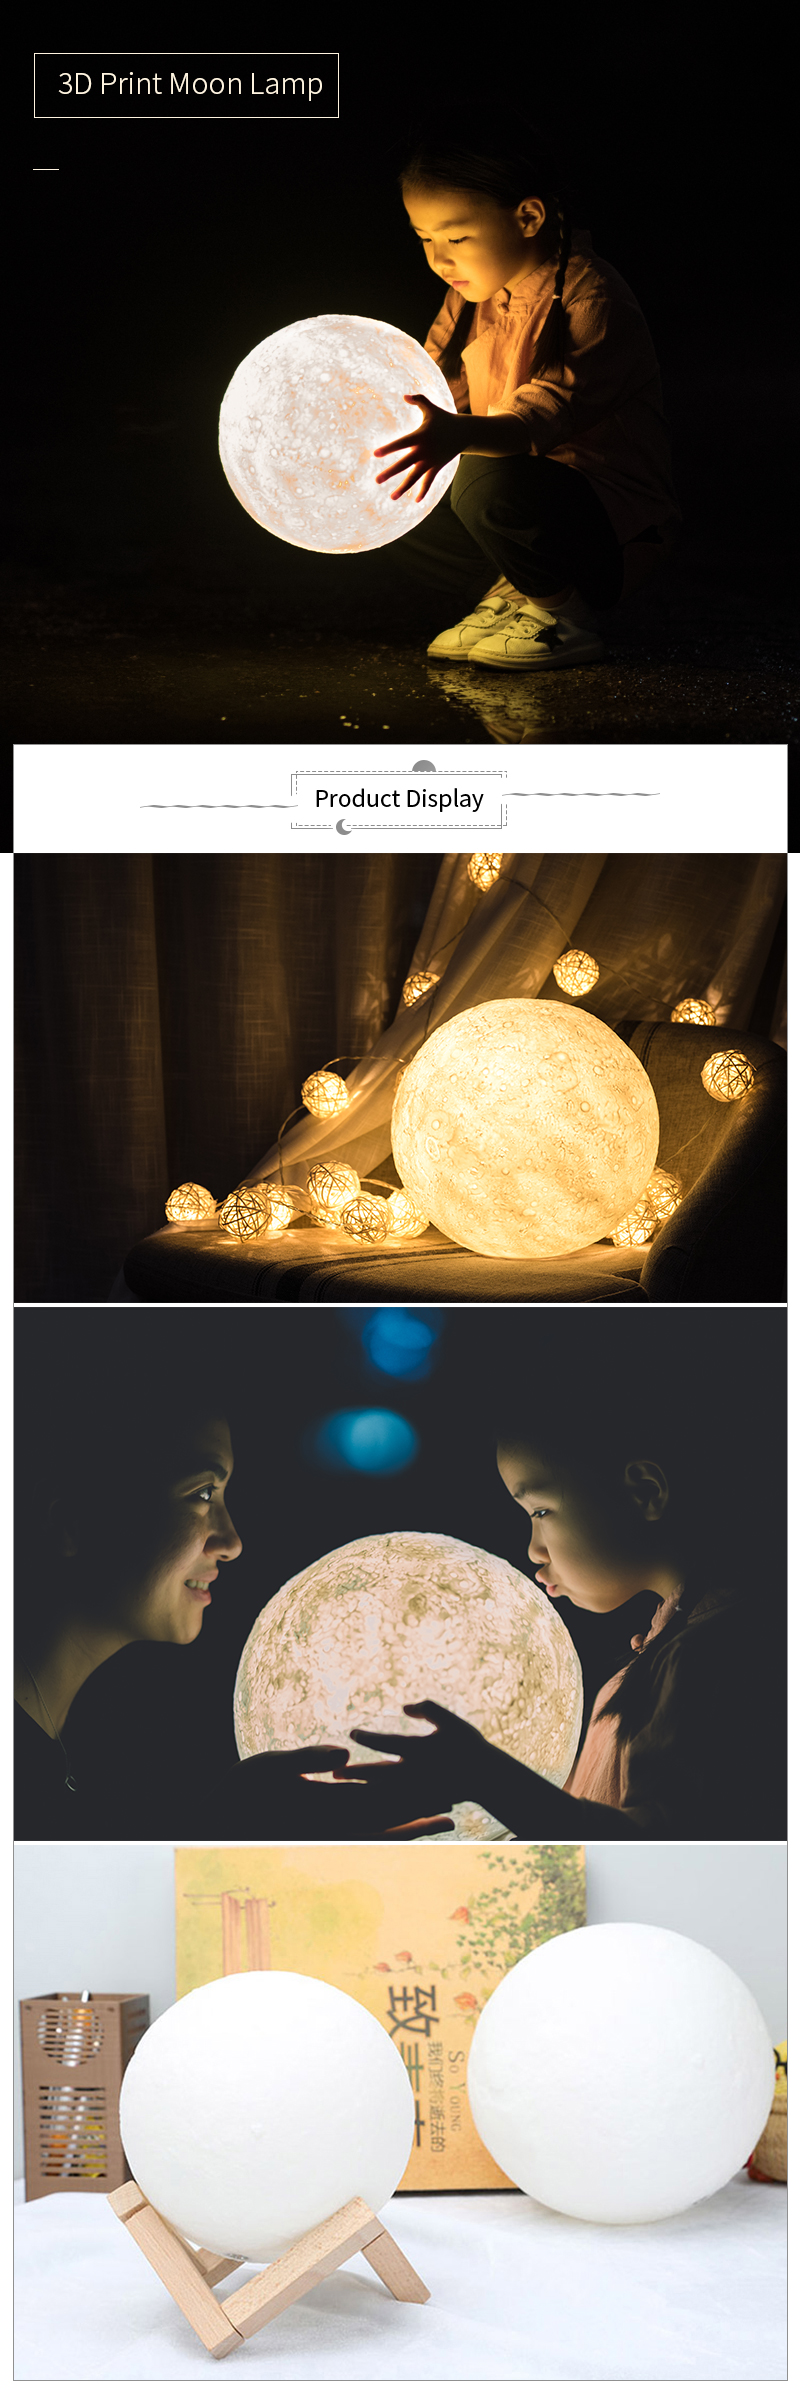 3D Print Moon Lamp Rechargeable Night Light RGB Color Change Touch Switch Bedroom 3D lunar Moon Lamp Home Decor Creative Gift 3